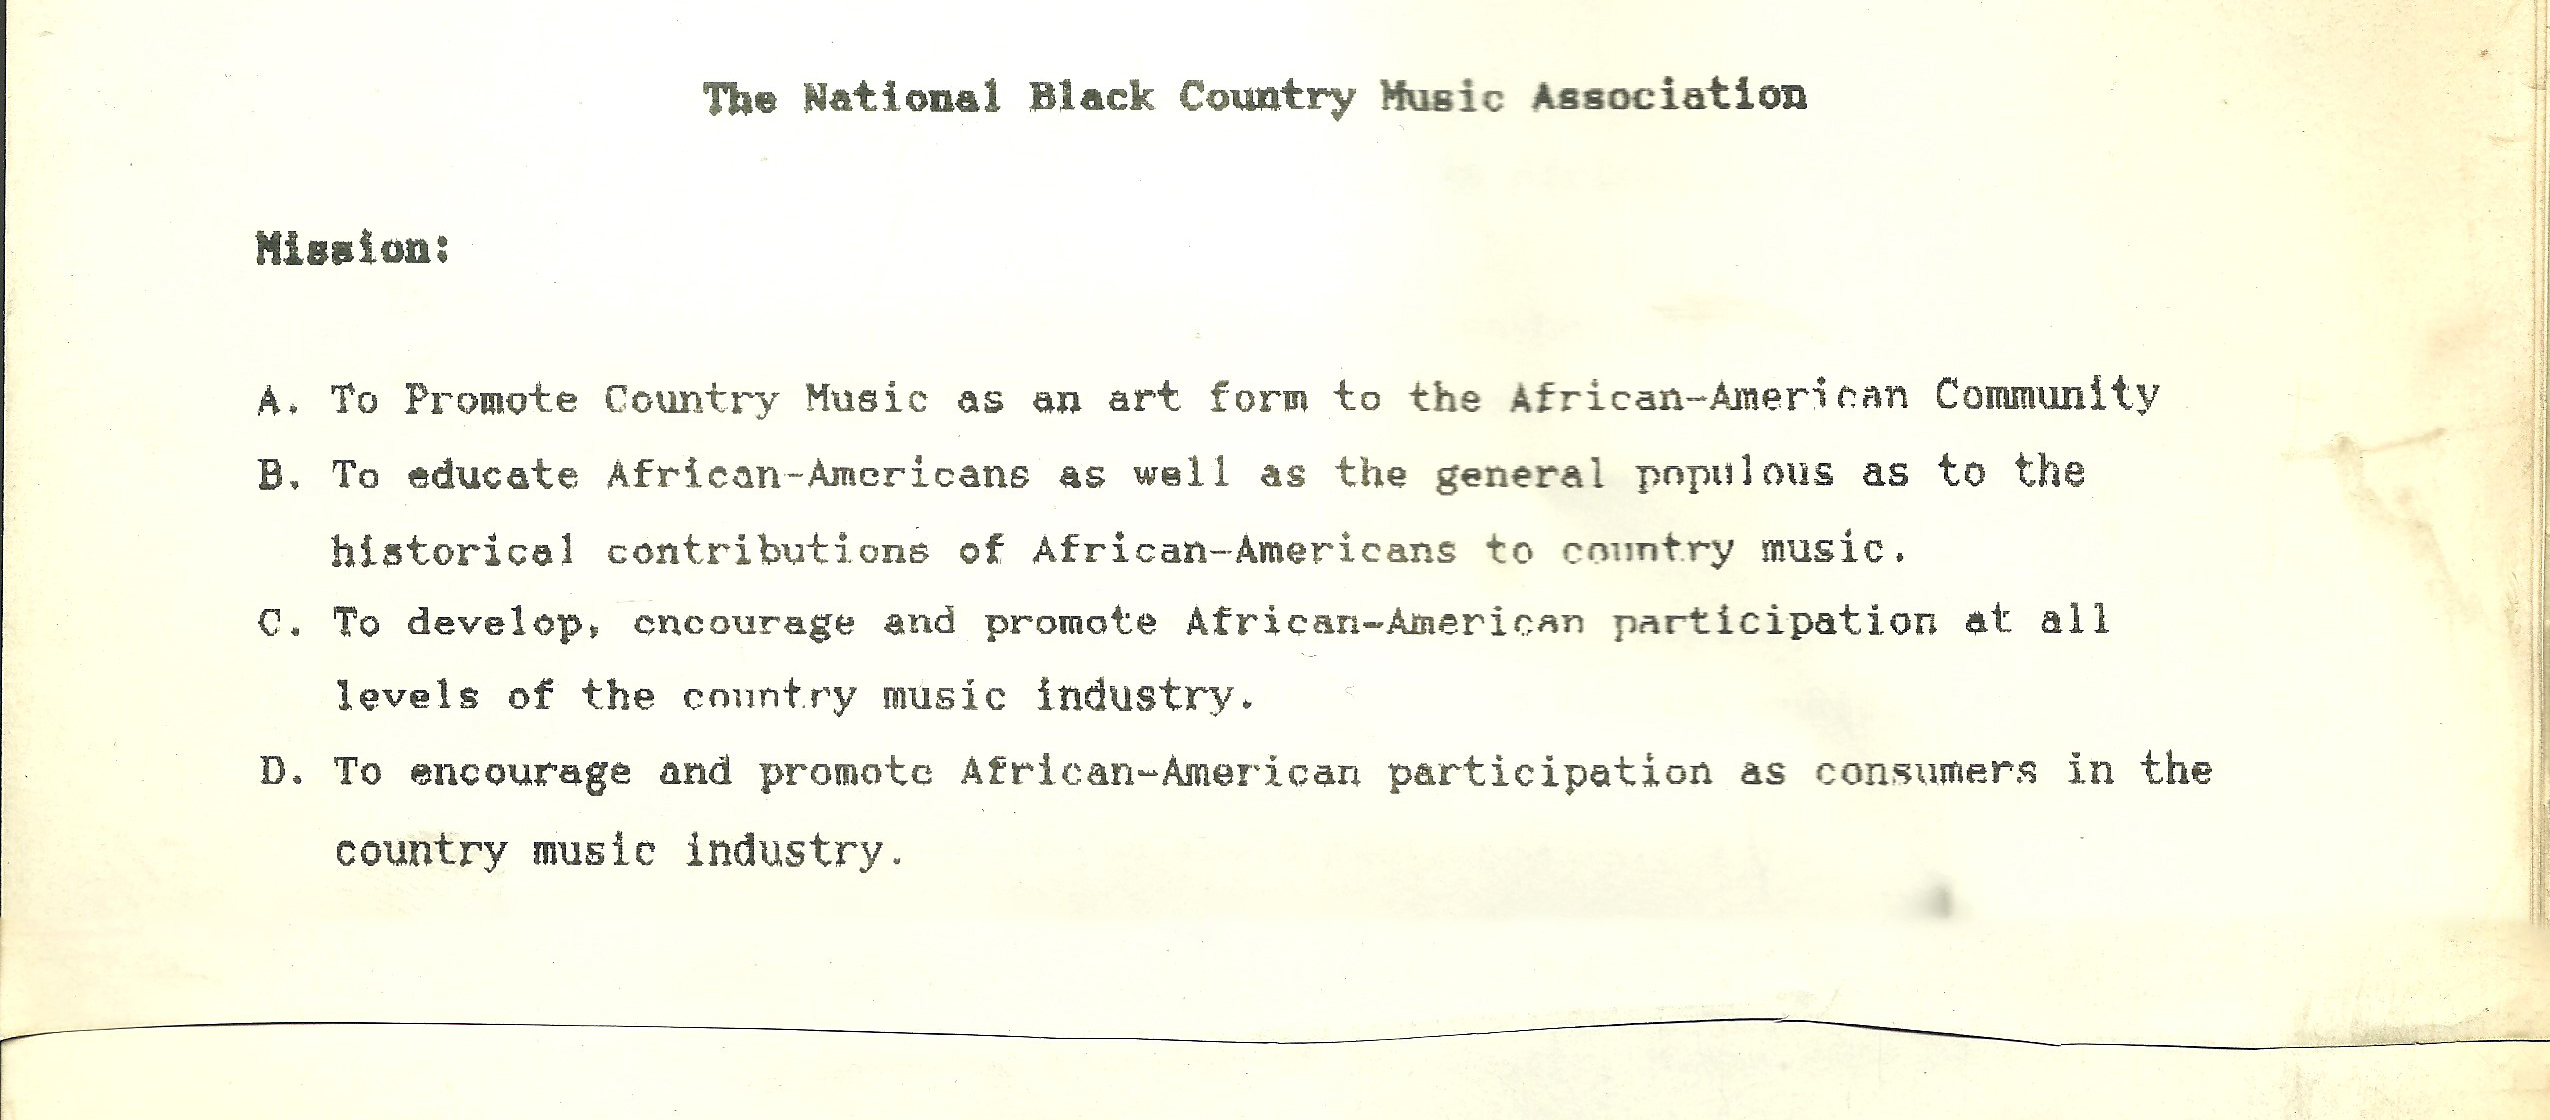 cleve francis mission statement black country music association